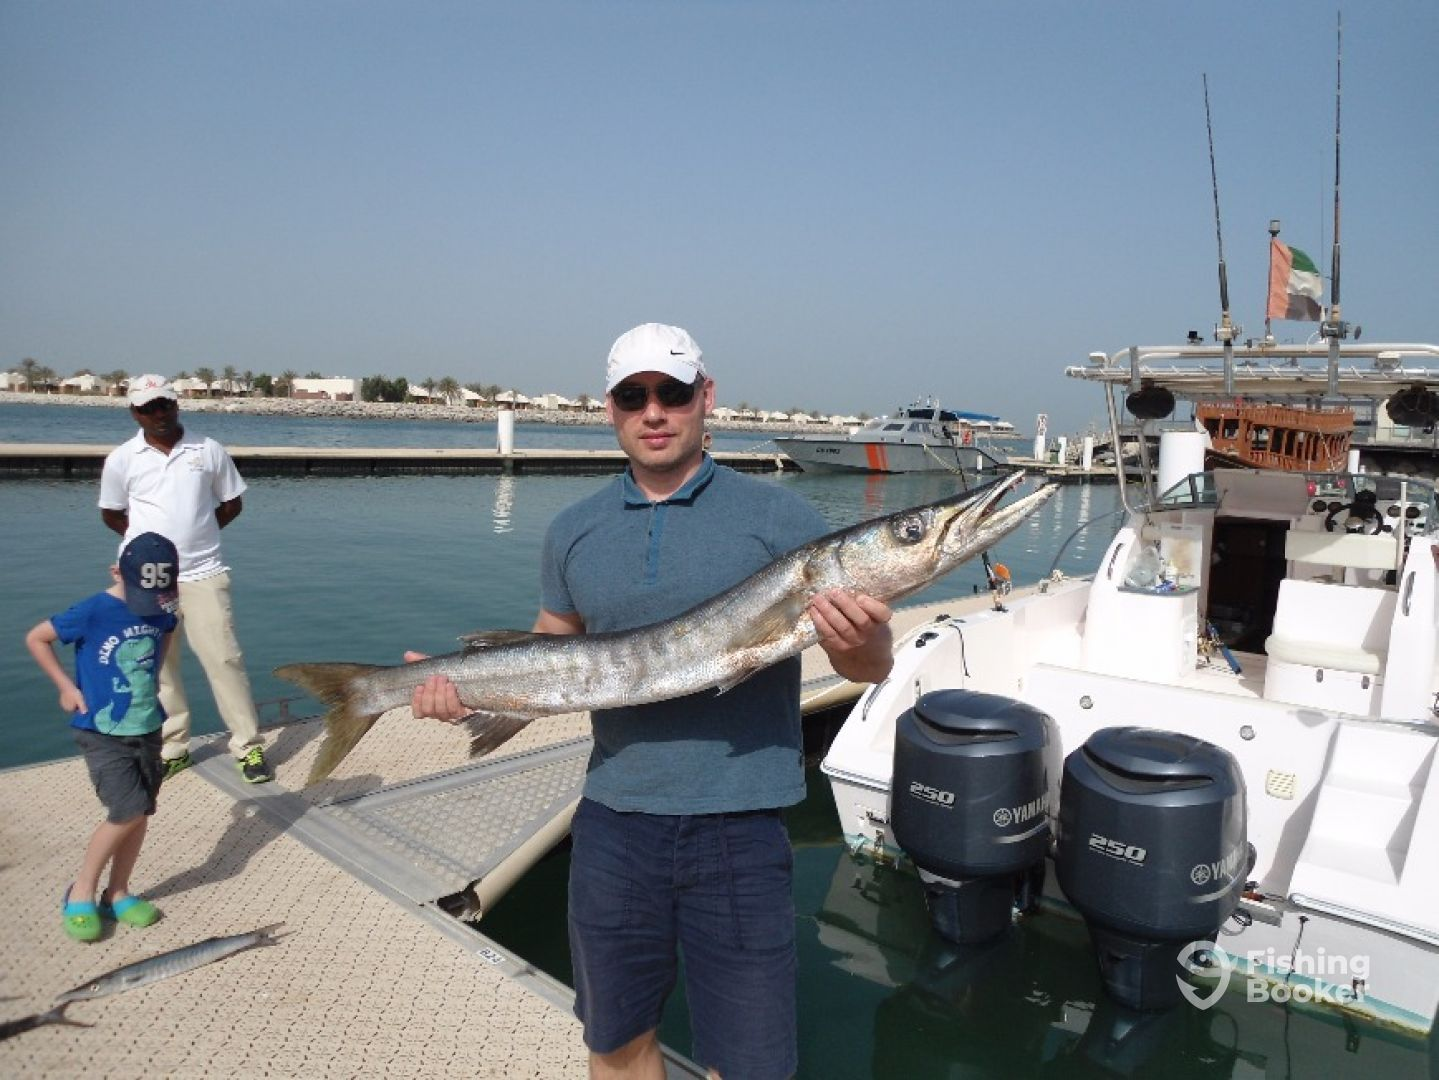 Large barracuda